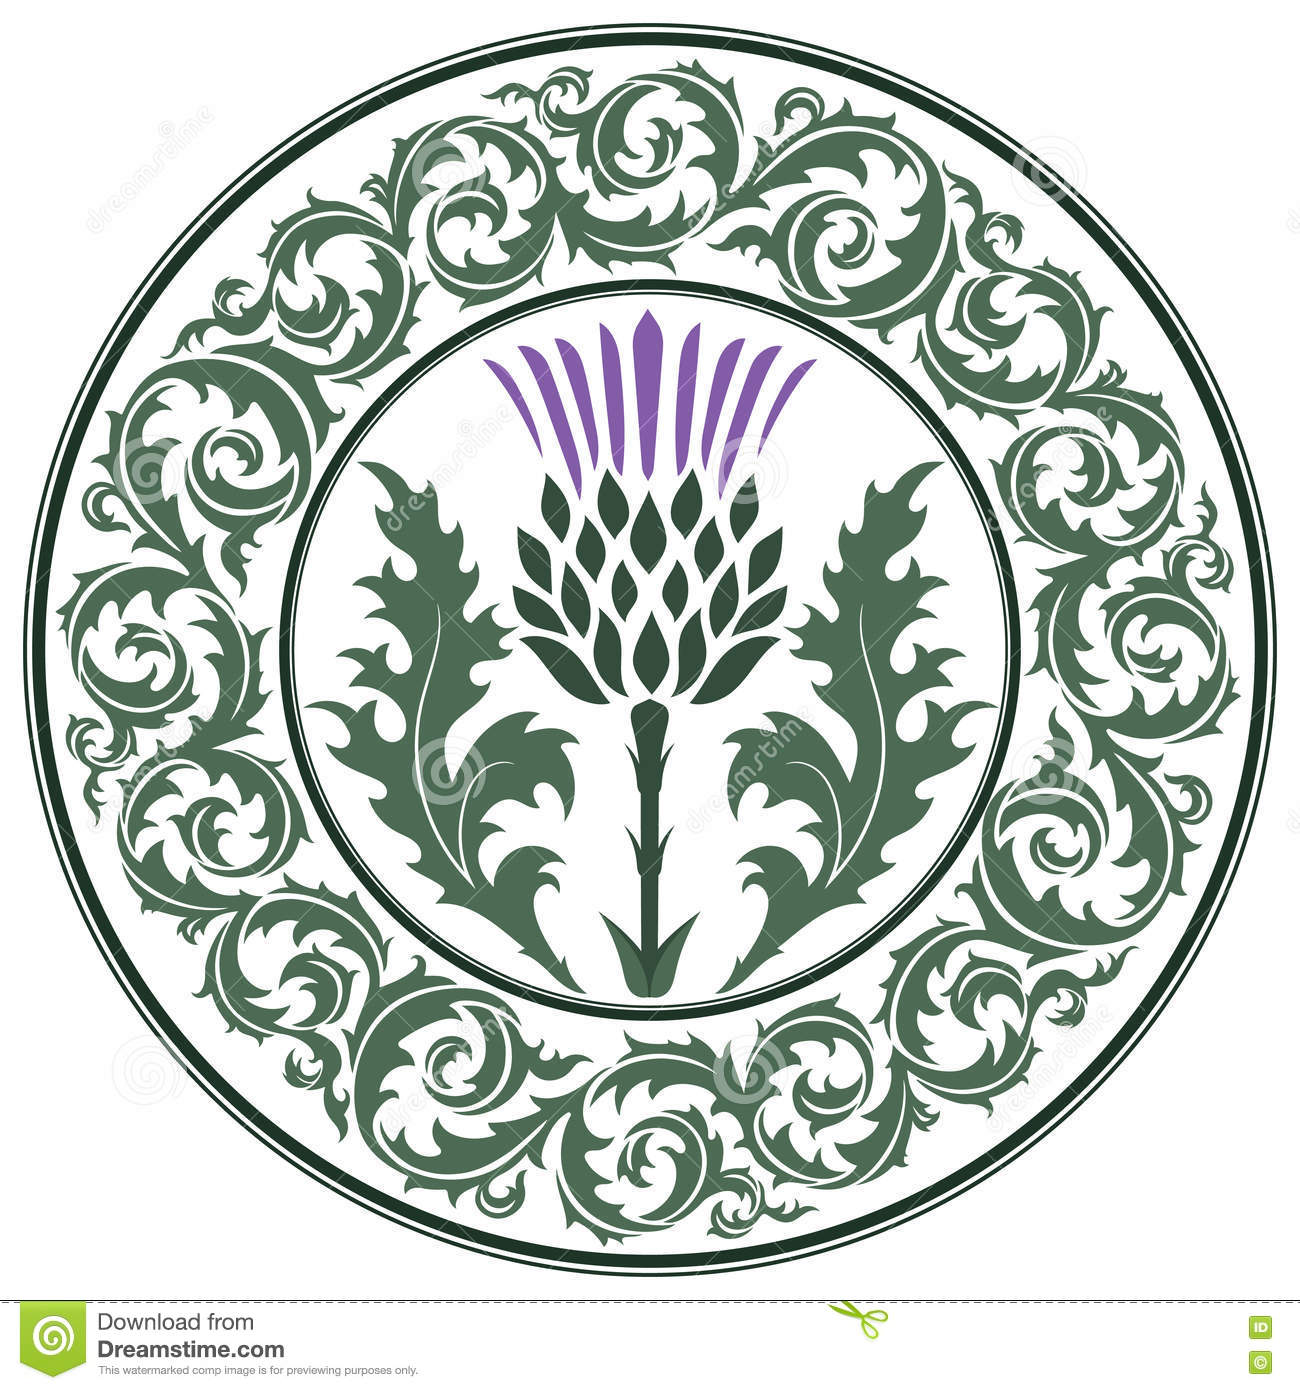 Thistle flower and ornament round leaf thistle the symbol of thistle flower and ornament round leaf thistle the symbol of scotland buycottarizona Image collections